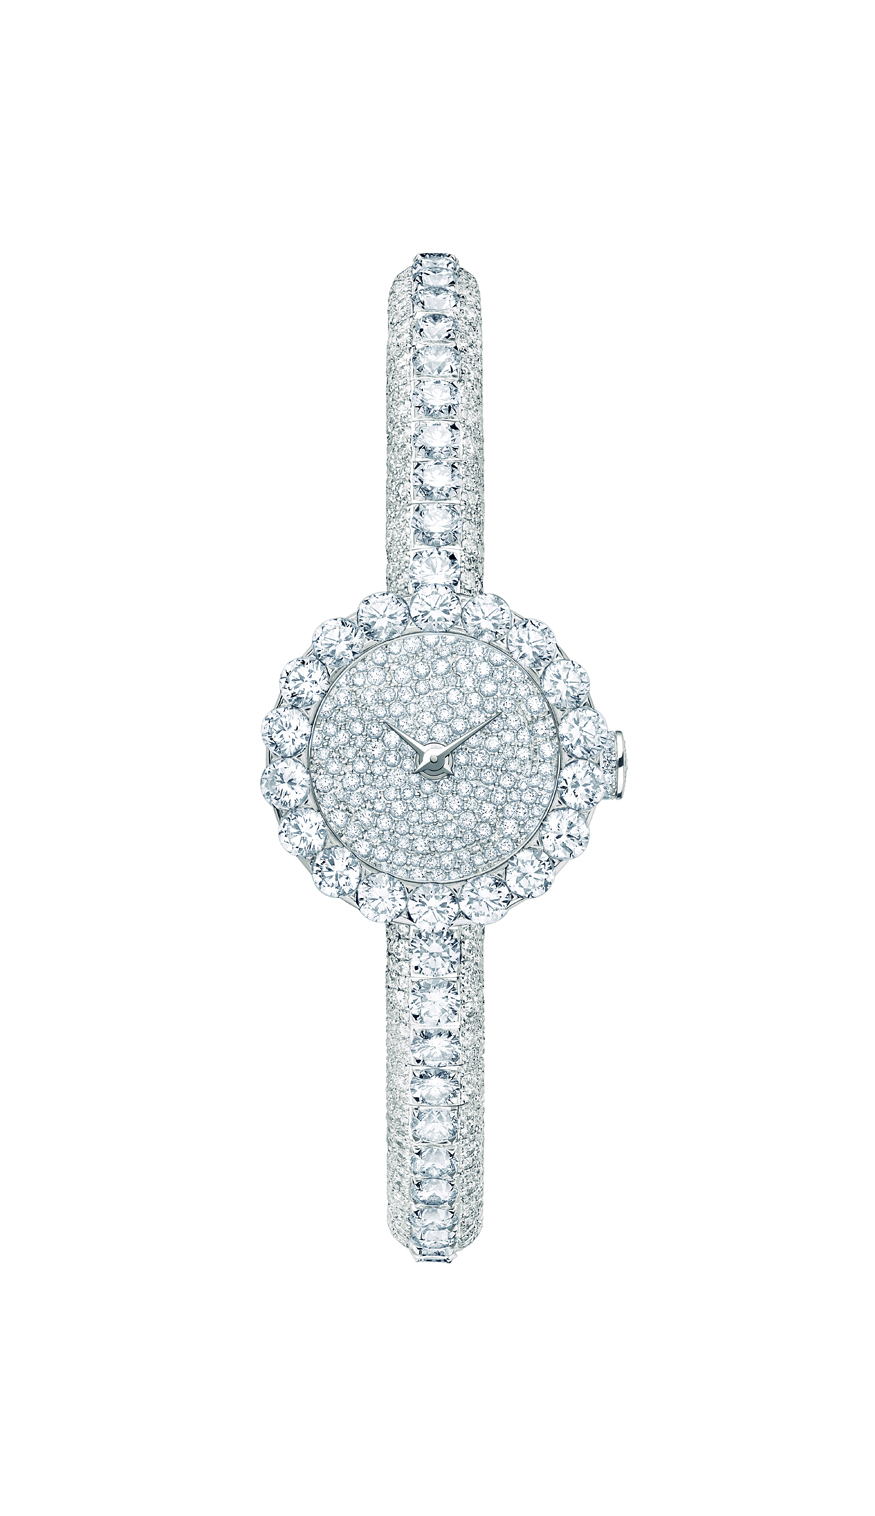 La mini  D de Dior «HAUTE JOAILLERIE» 21 mm quartz - Or blanc et diamants